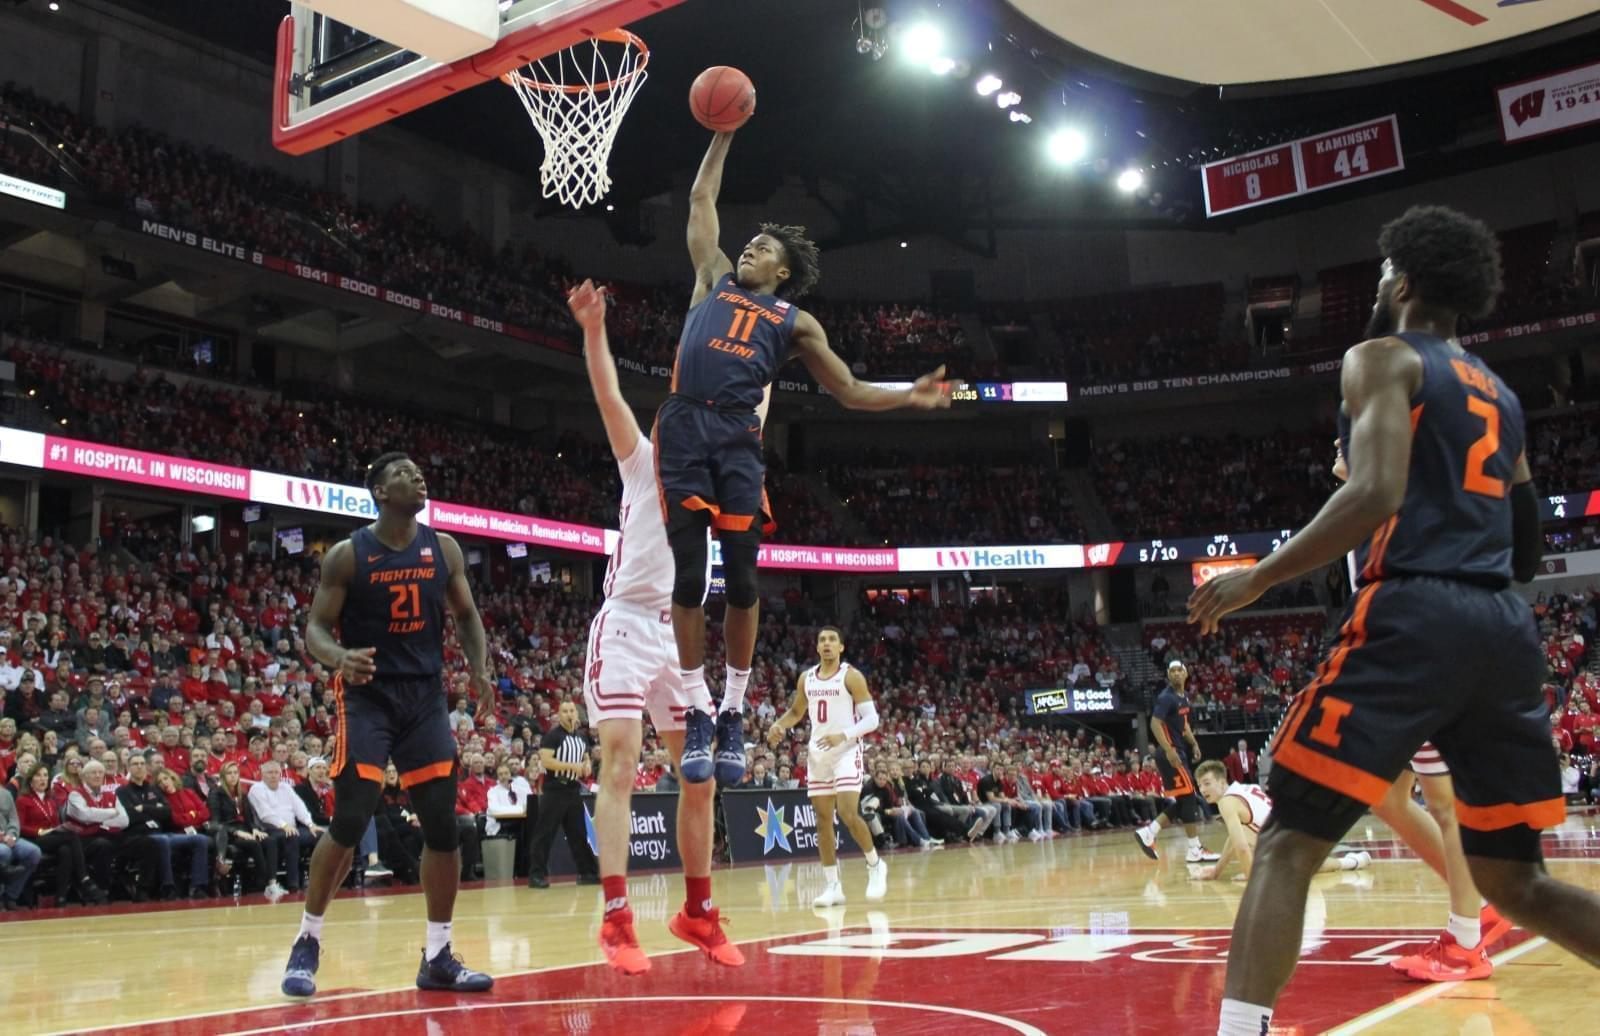 Illinois' Ayo Dosunmu slams in two of his 18 points in the Illini's 71-70 win over Wisconsin Wednesday in Madison.